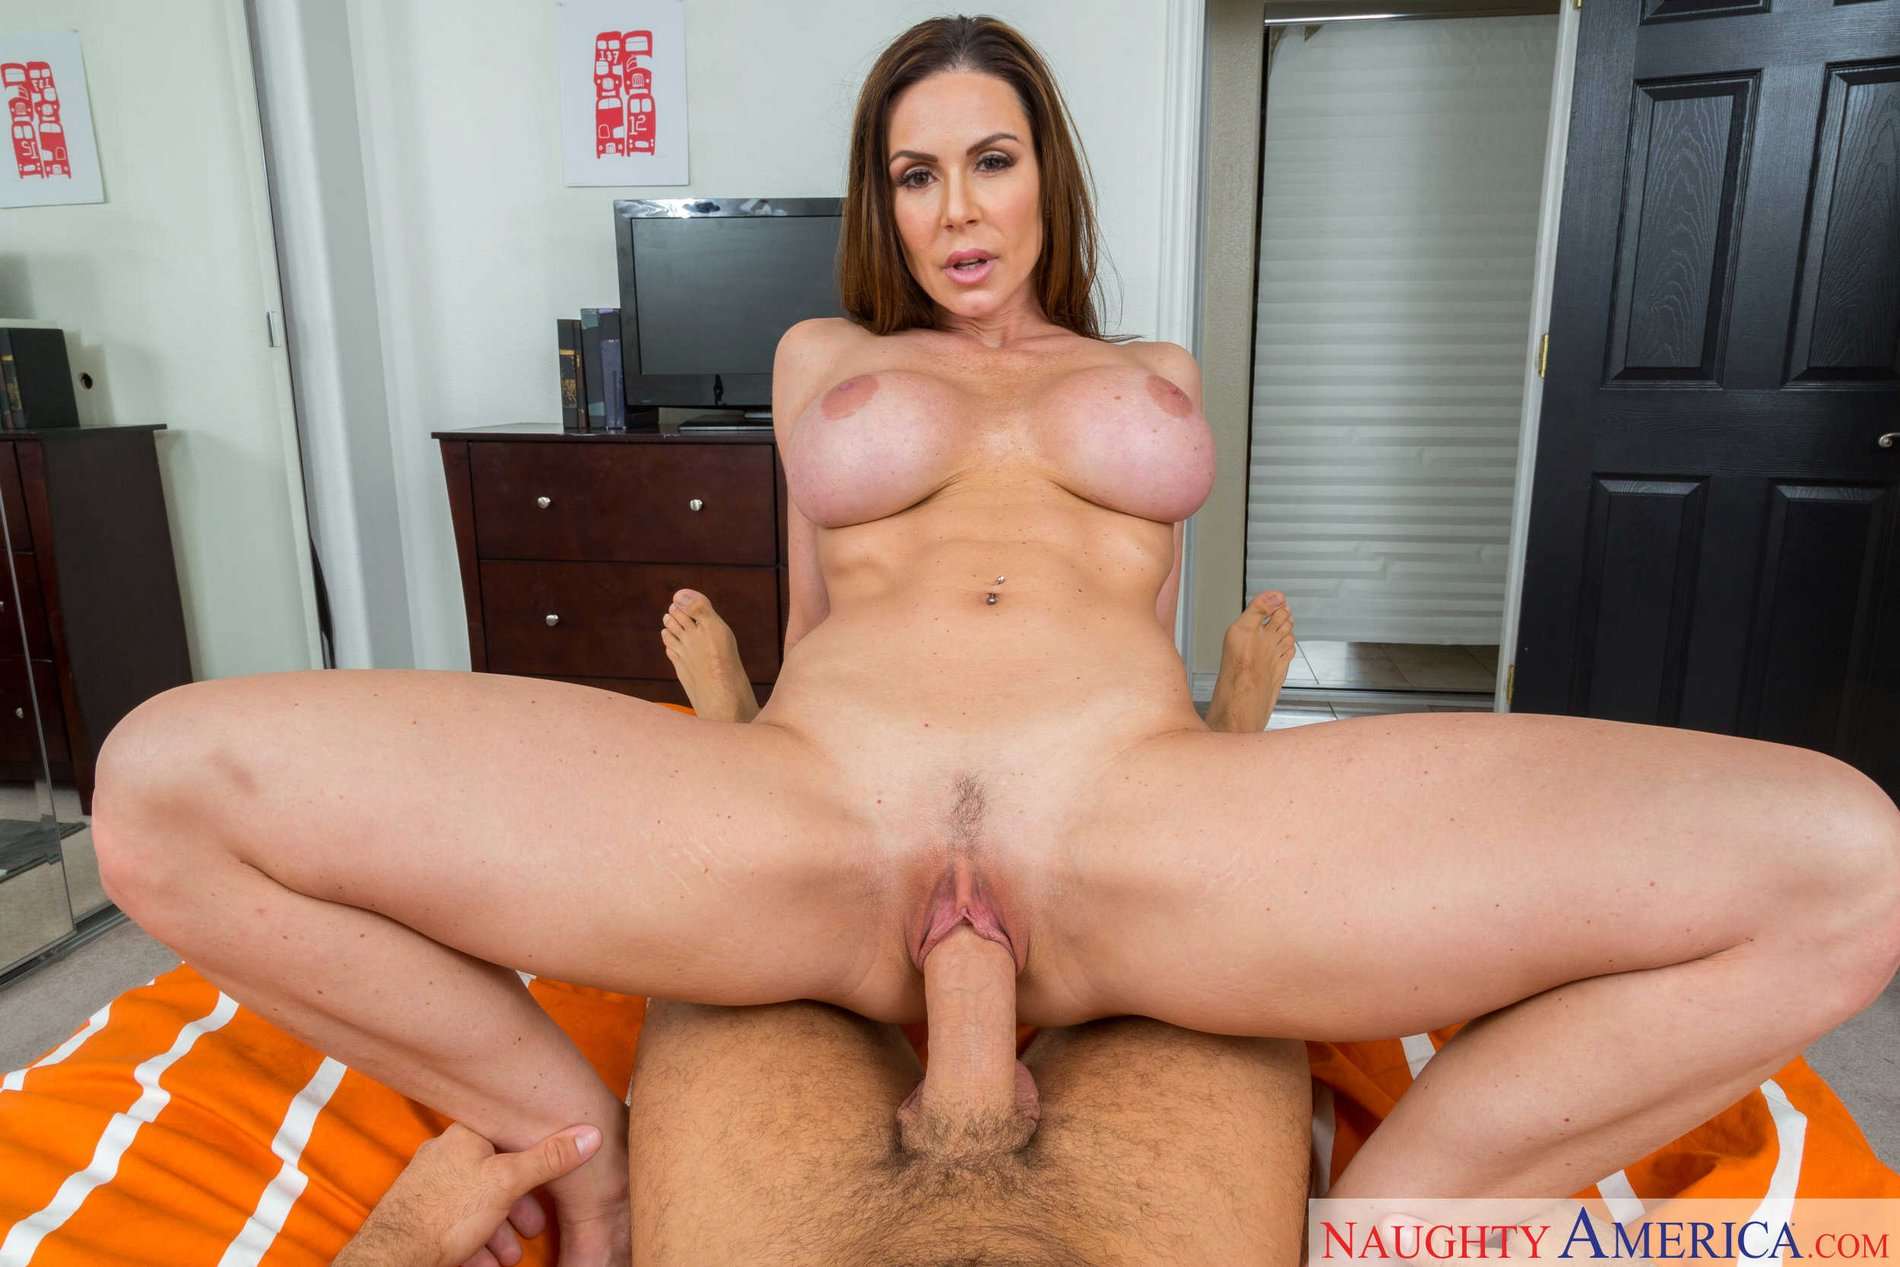 Can recommend Kendra lust milf sex still variants?